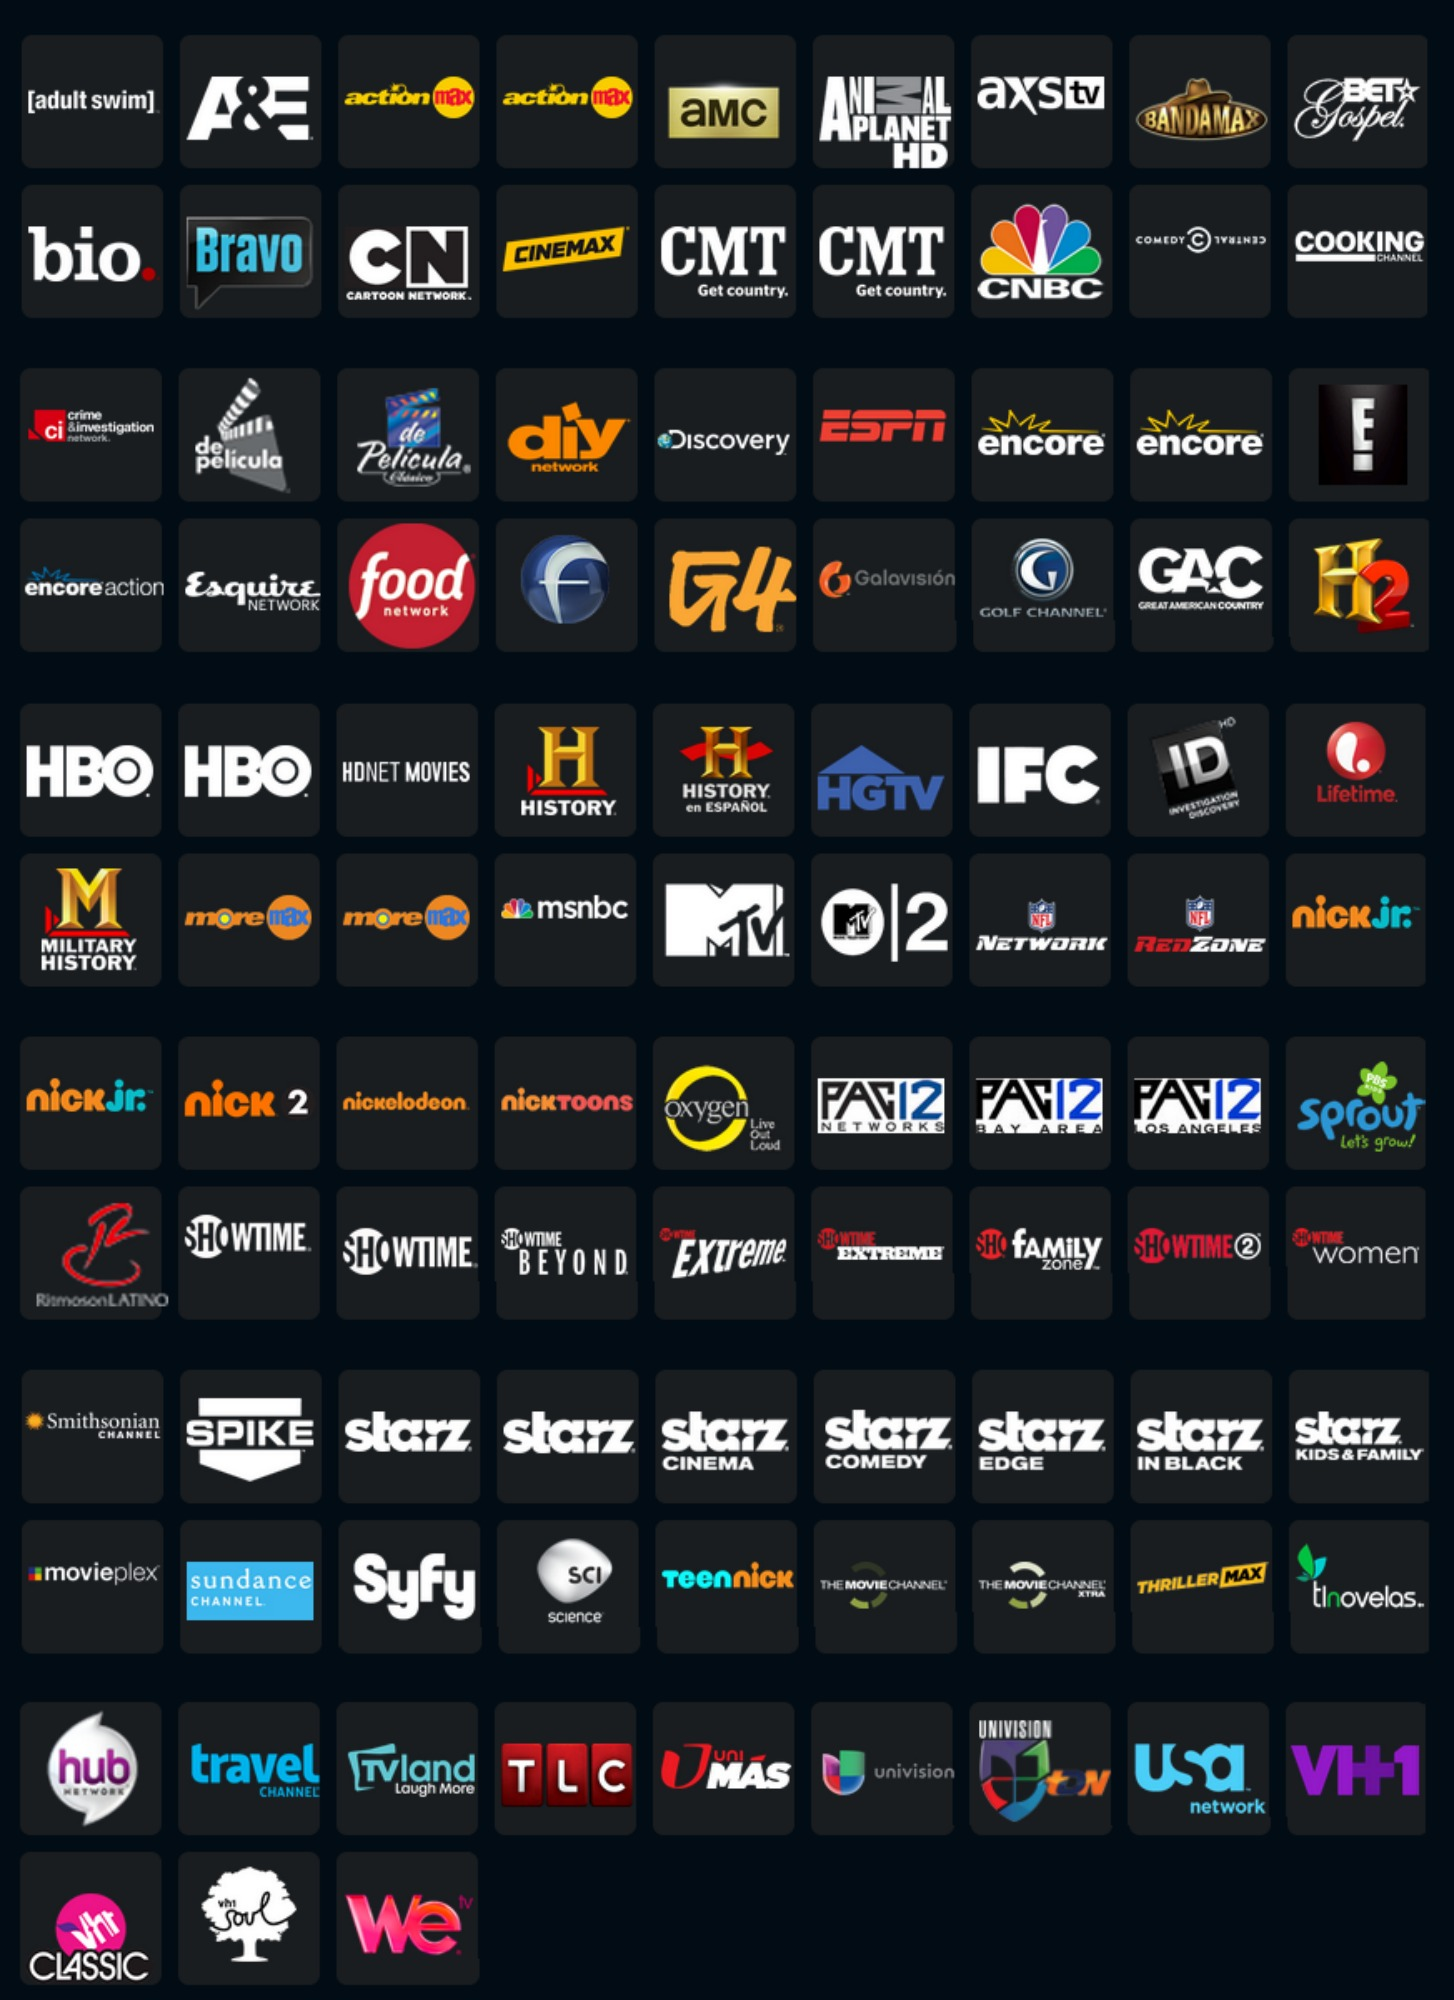 100 live TV channels now available for the streaming via